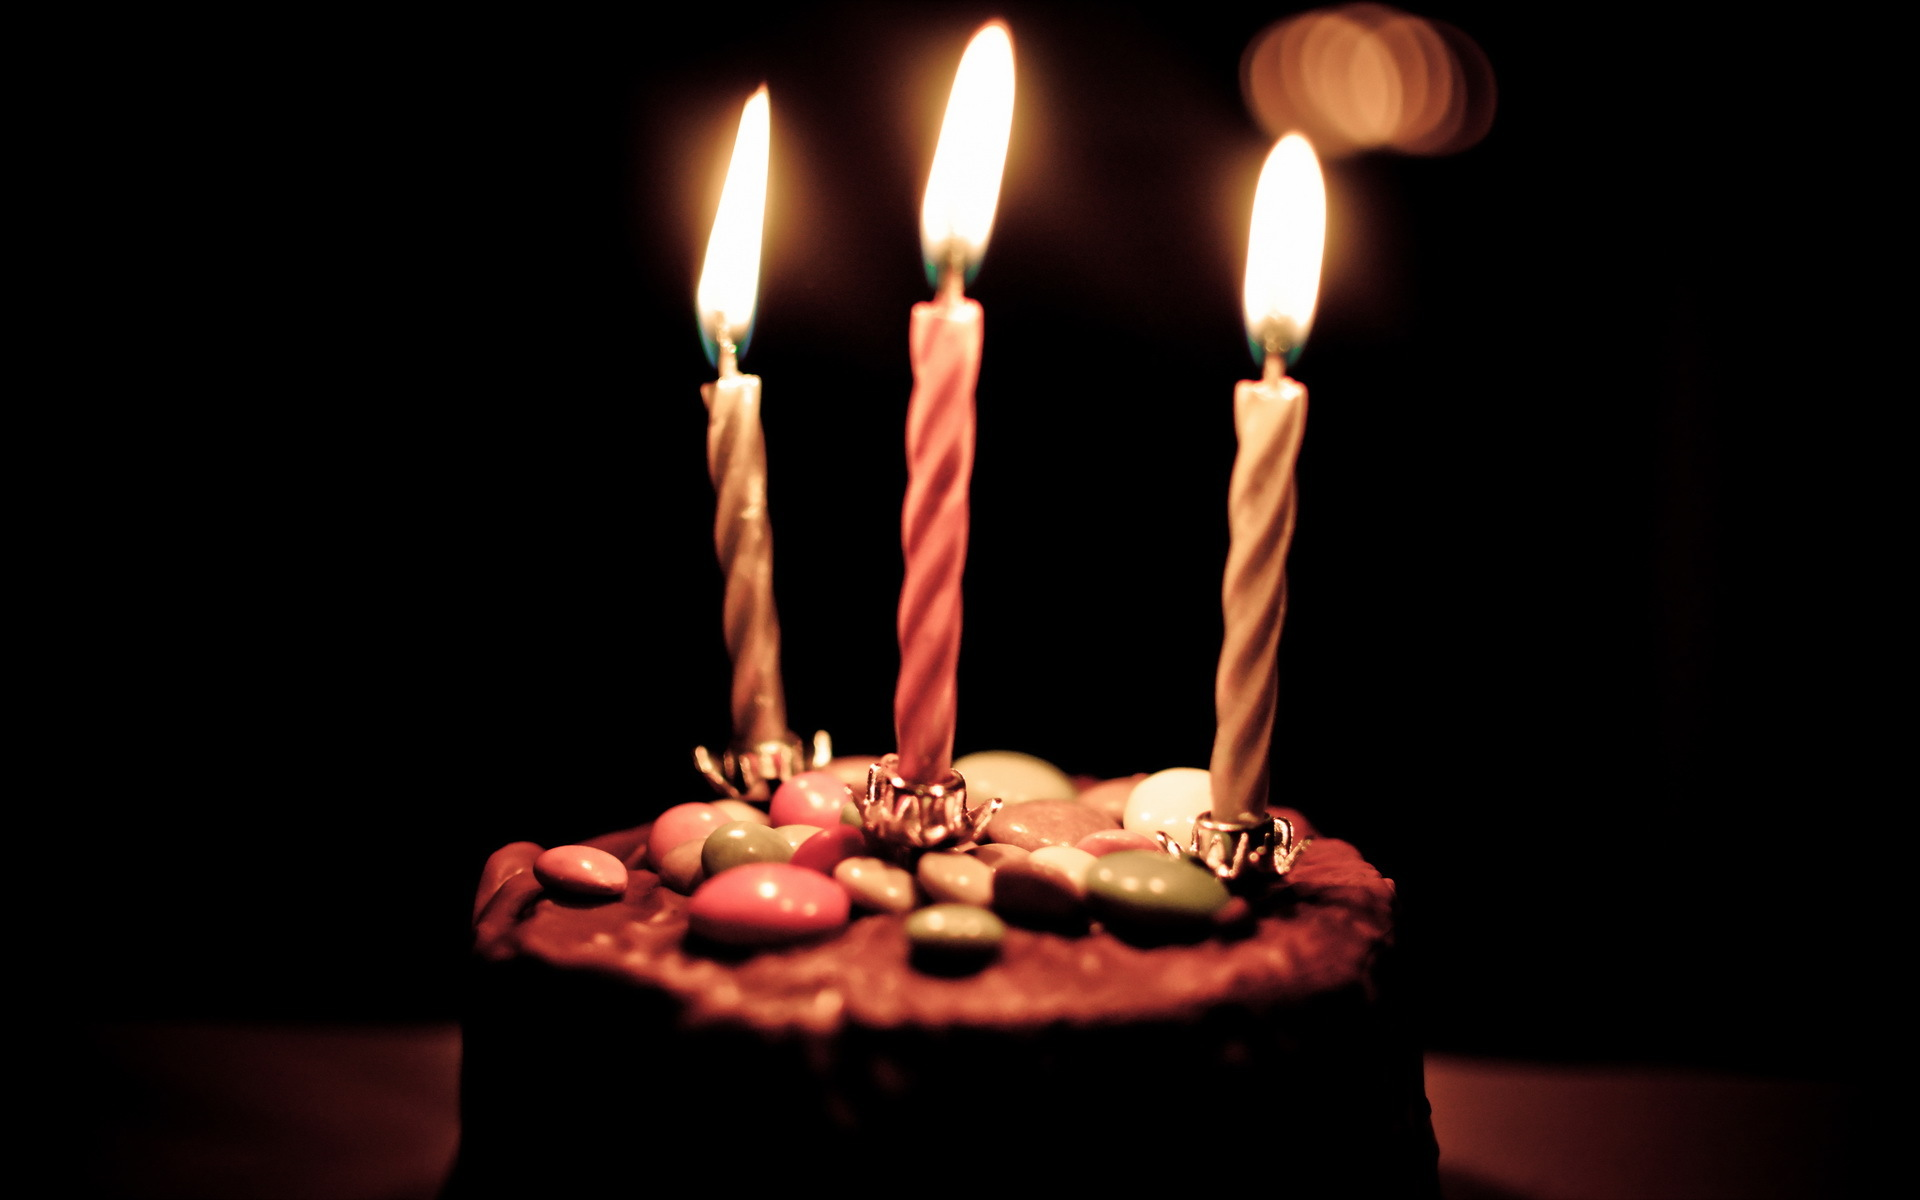 Candles Cake Birthday wallpaper 1920x1200 183371 ...